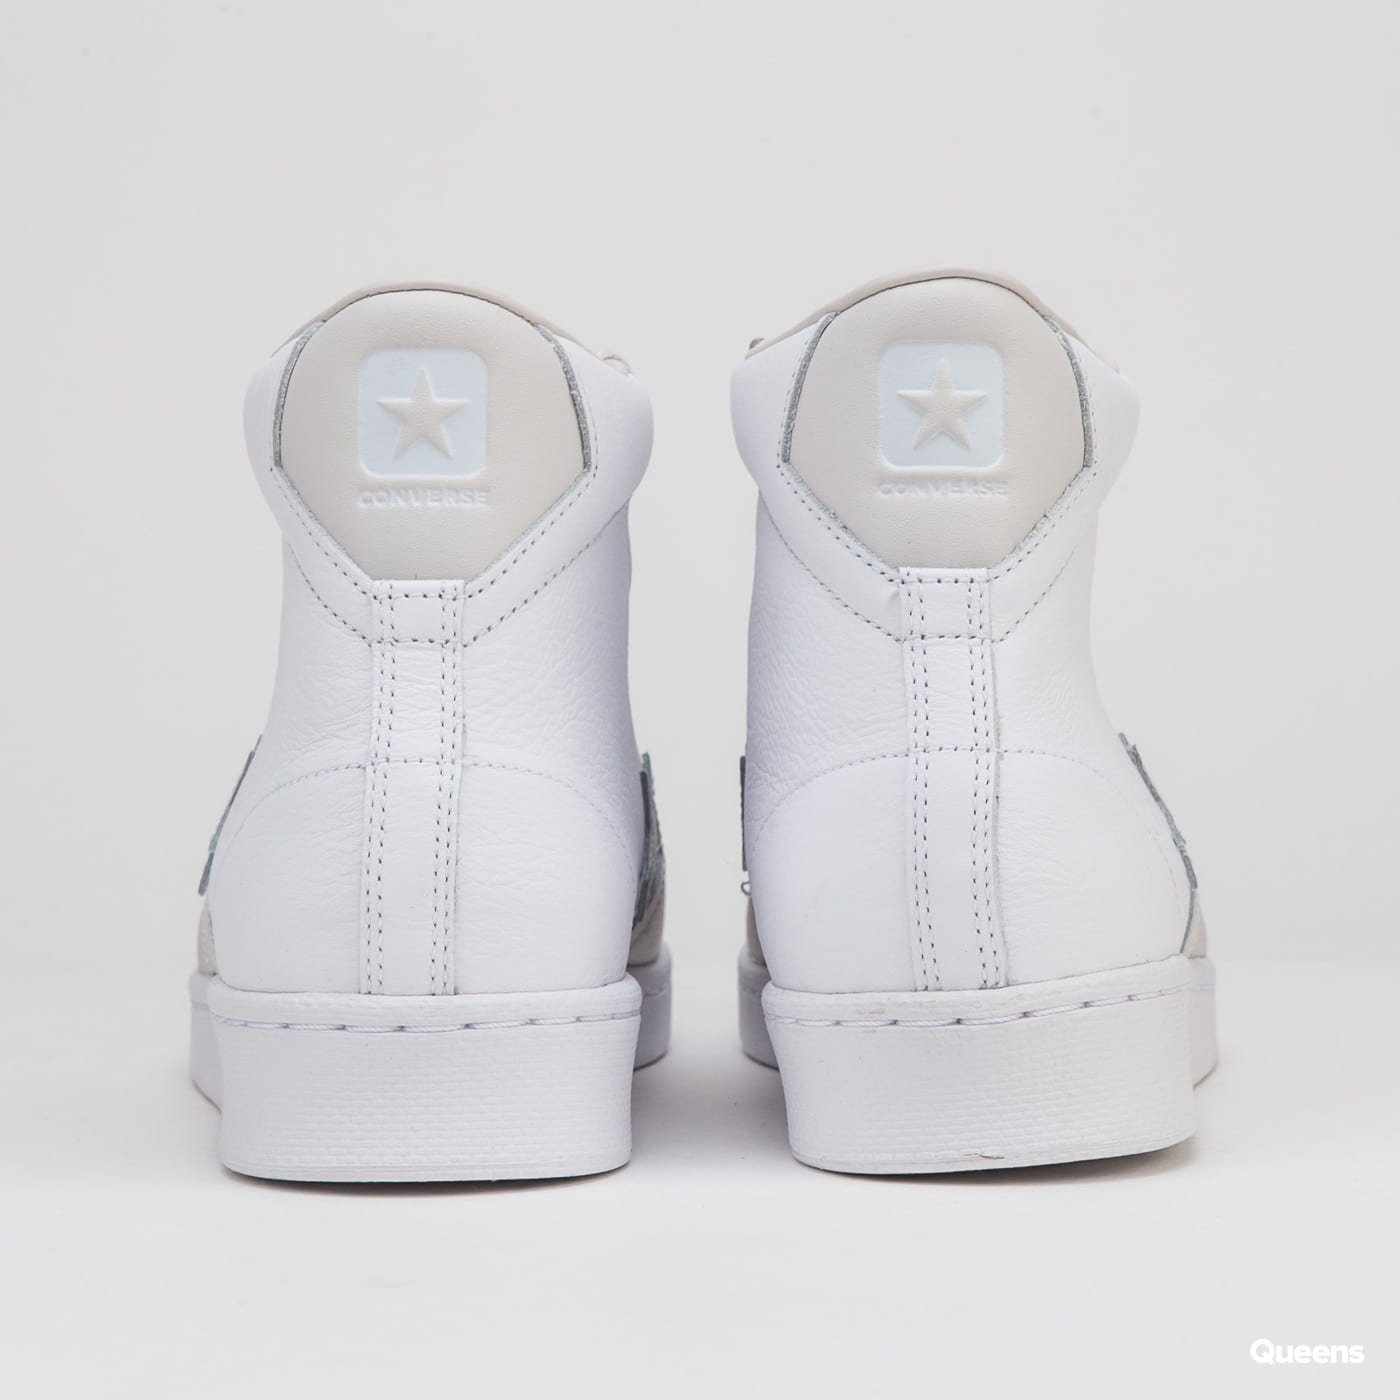 Converse Pro Leather Gold Standard white / pale putty / white